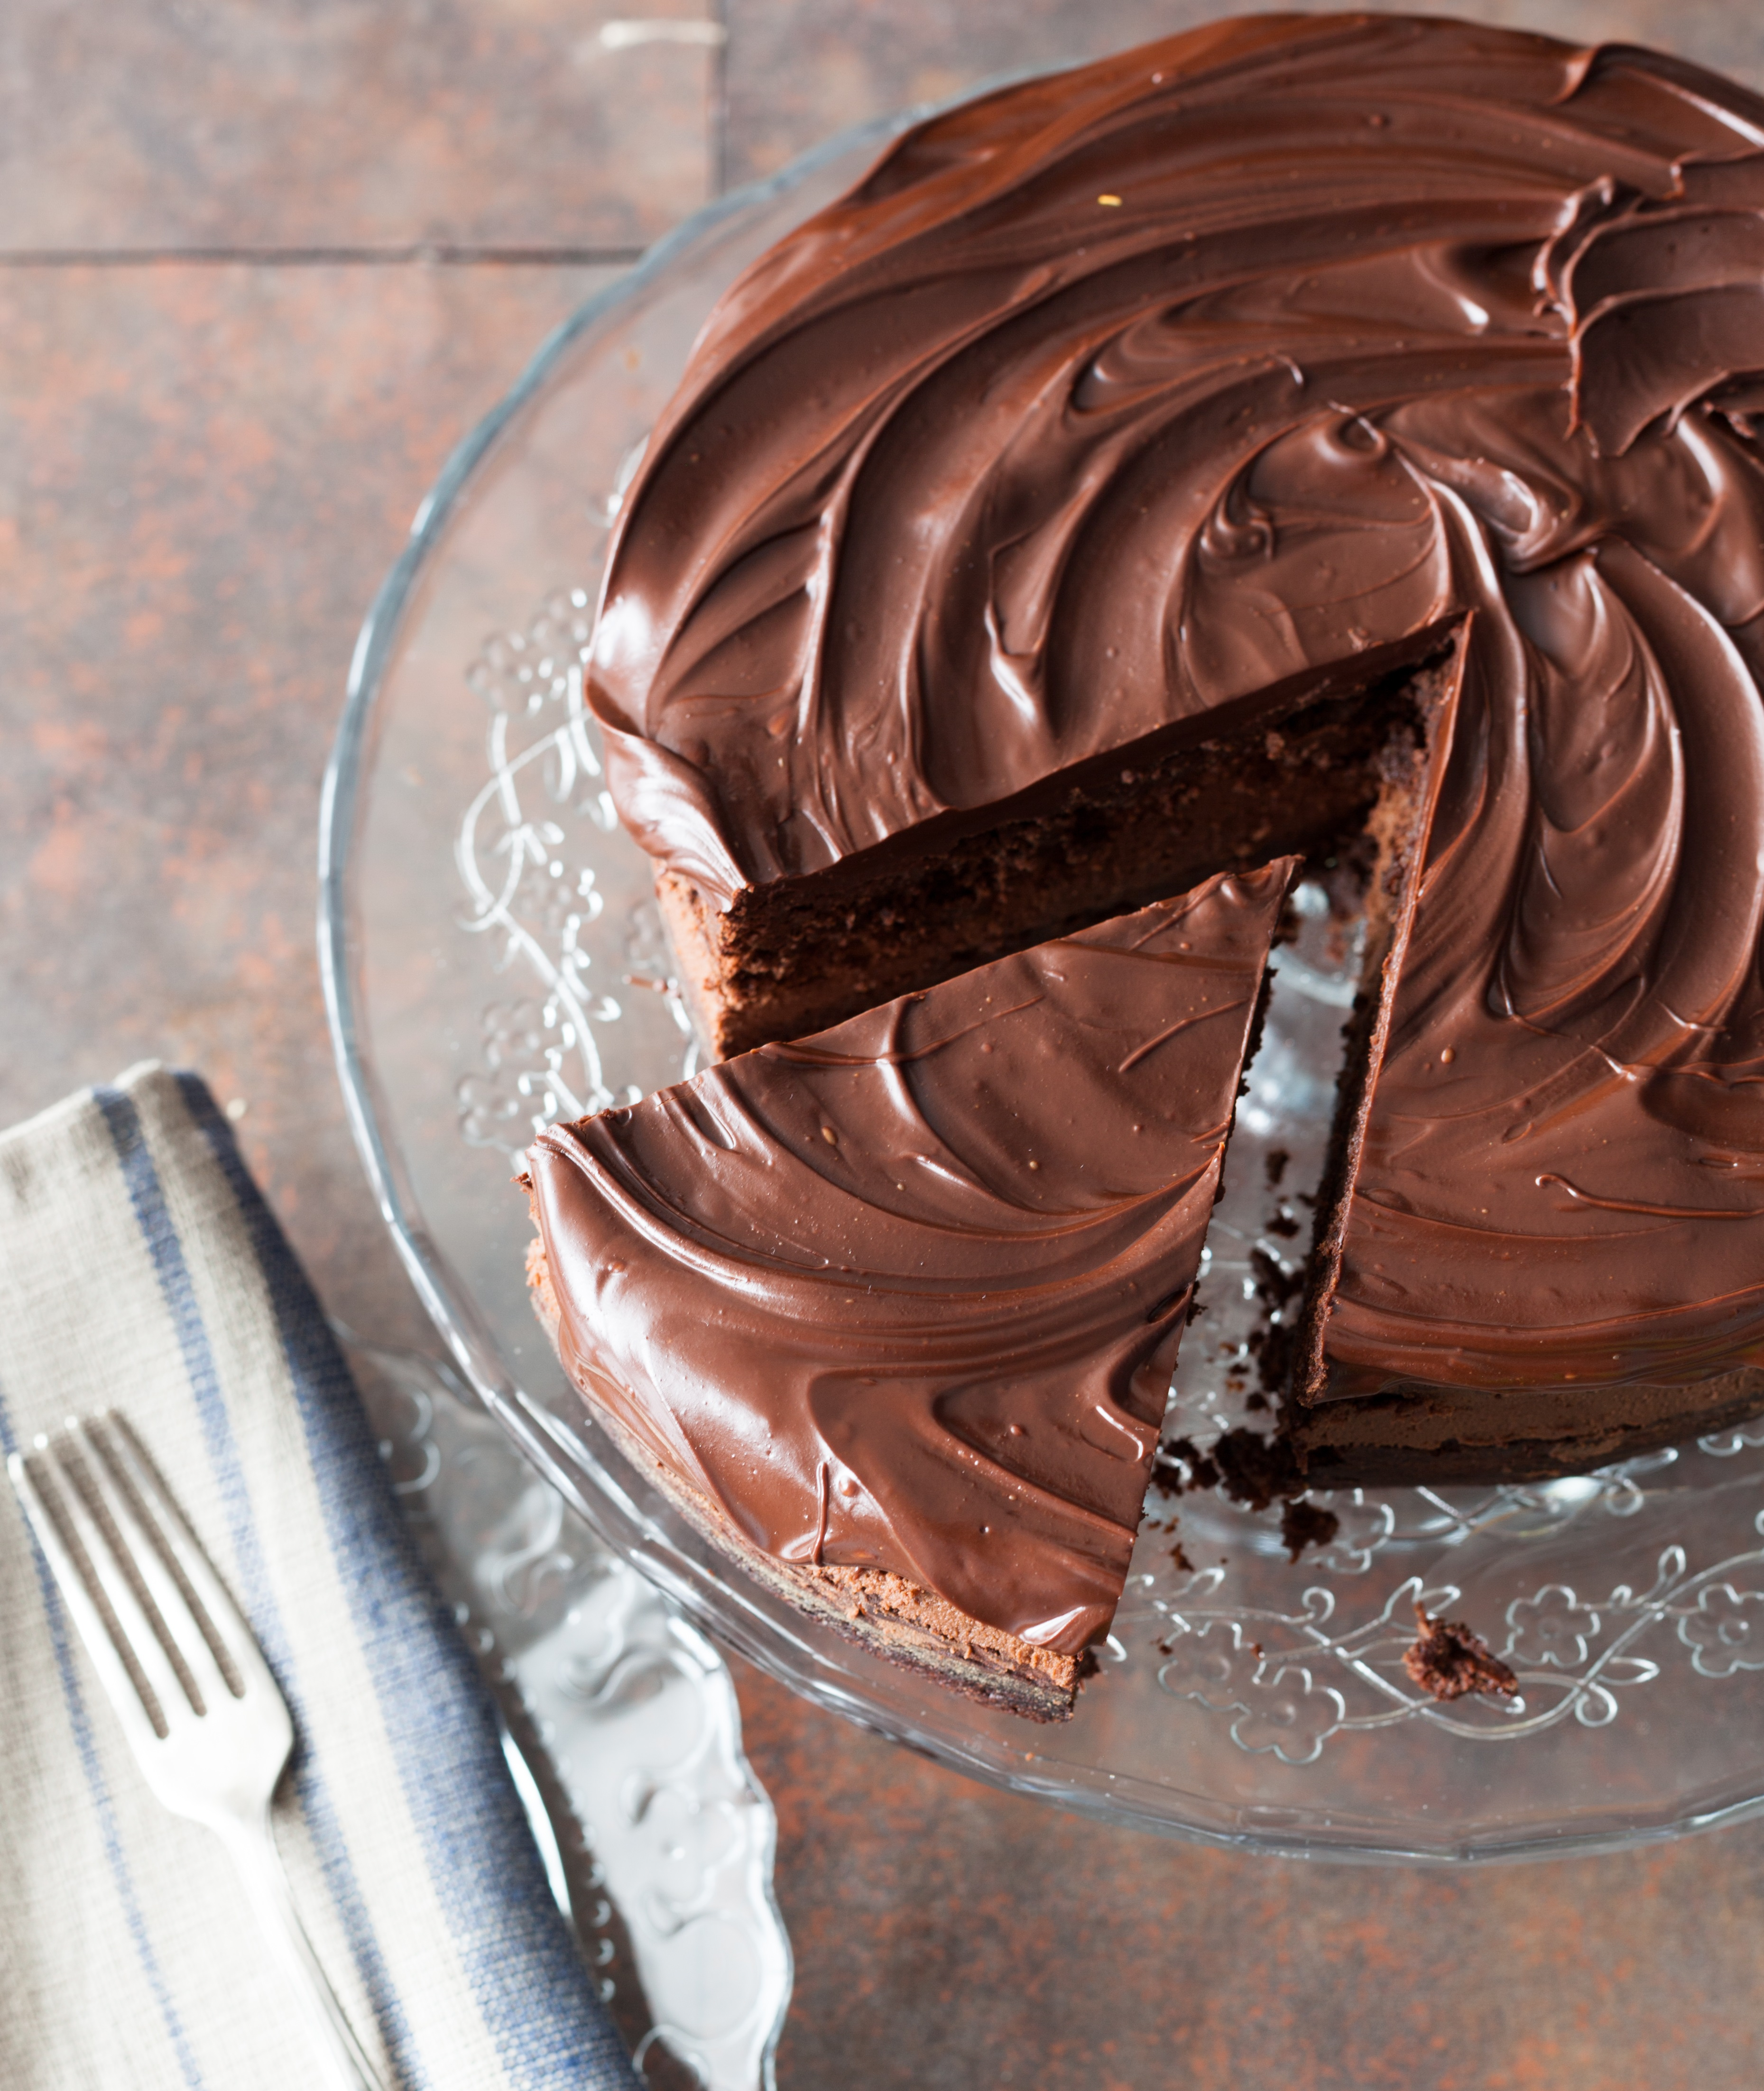 Perfectly Chocolate' Chocolate Cake and Frosting